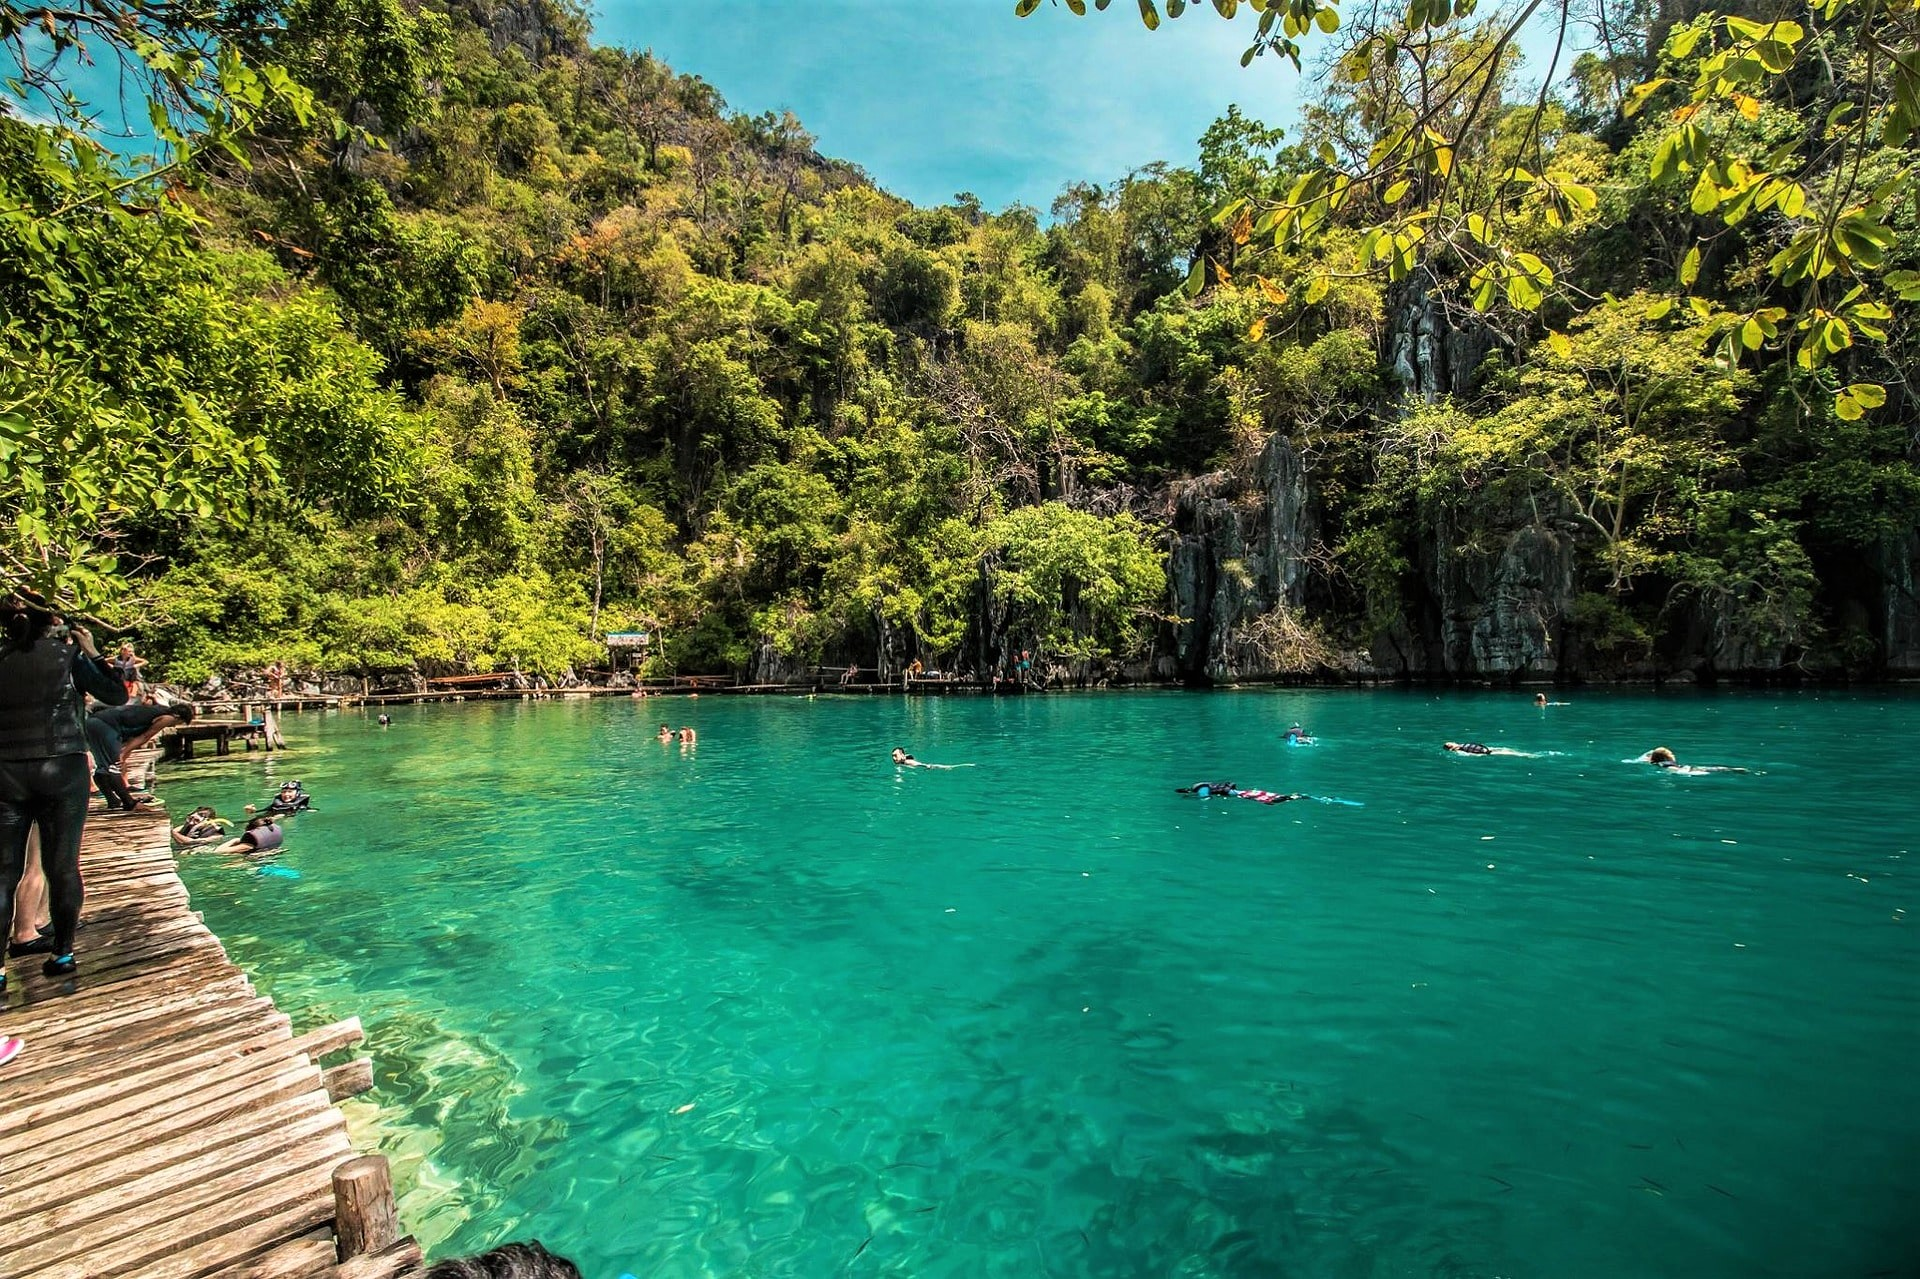 Top 5 Reasons Why It's More Fun in the Philippines